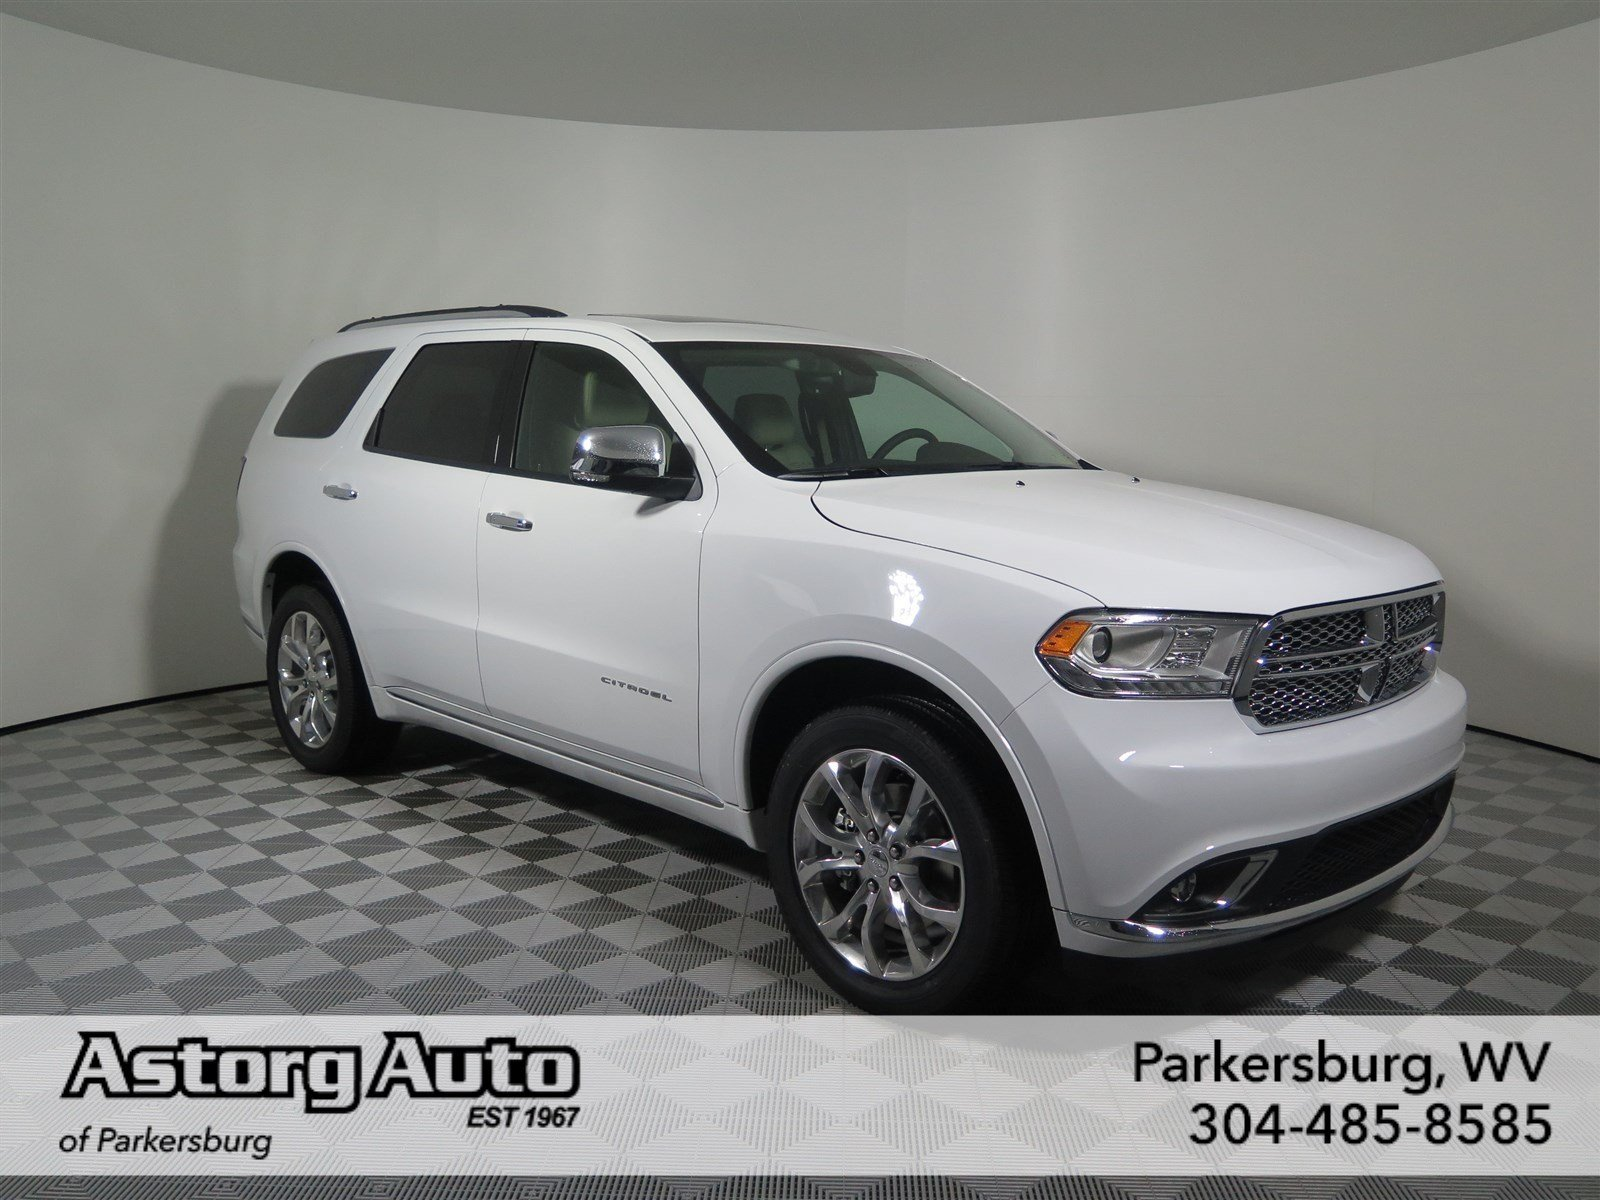 new 2017 dodge durango citadel sport utility in parkersburg d6148 astorg auto. Black Bedroom Furniture Sets. Home Design Ideas